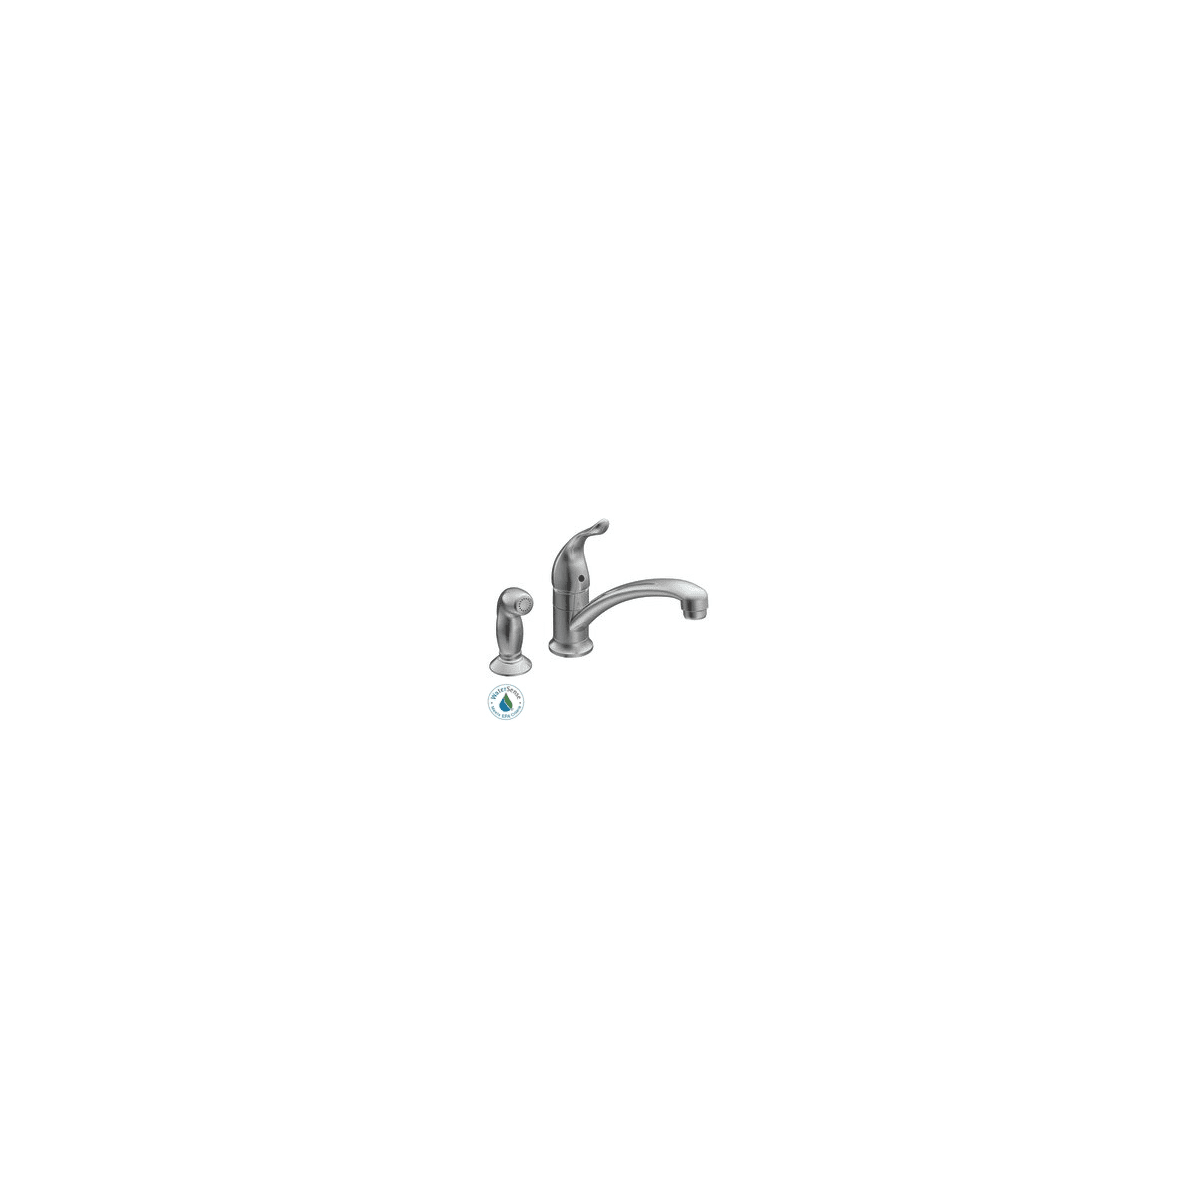 Moen 7437 Chrome Chateau Single Handle Kitchen Faucet With Side Spray Faucetdirect Com